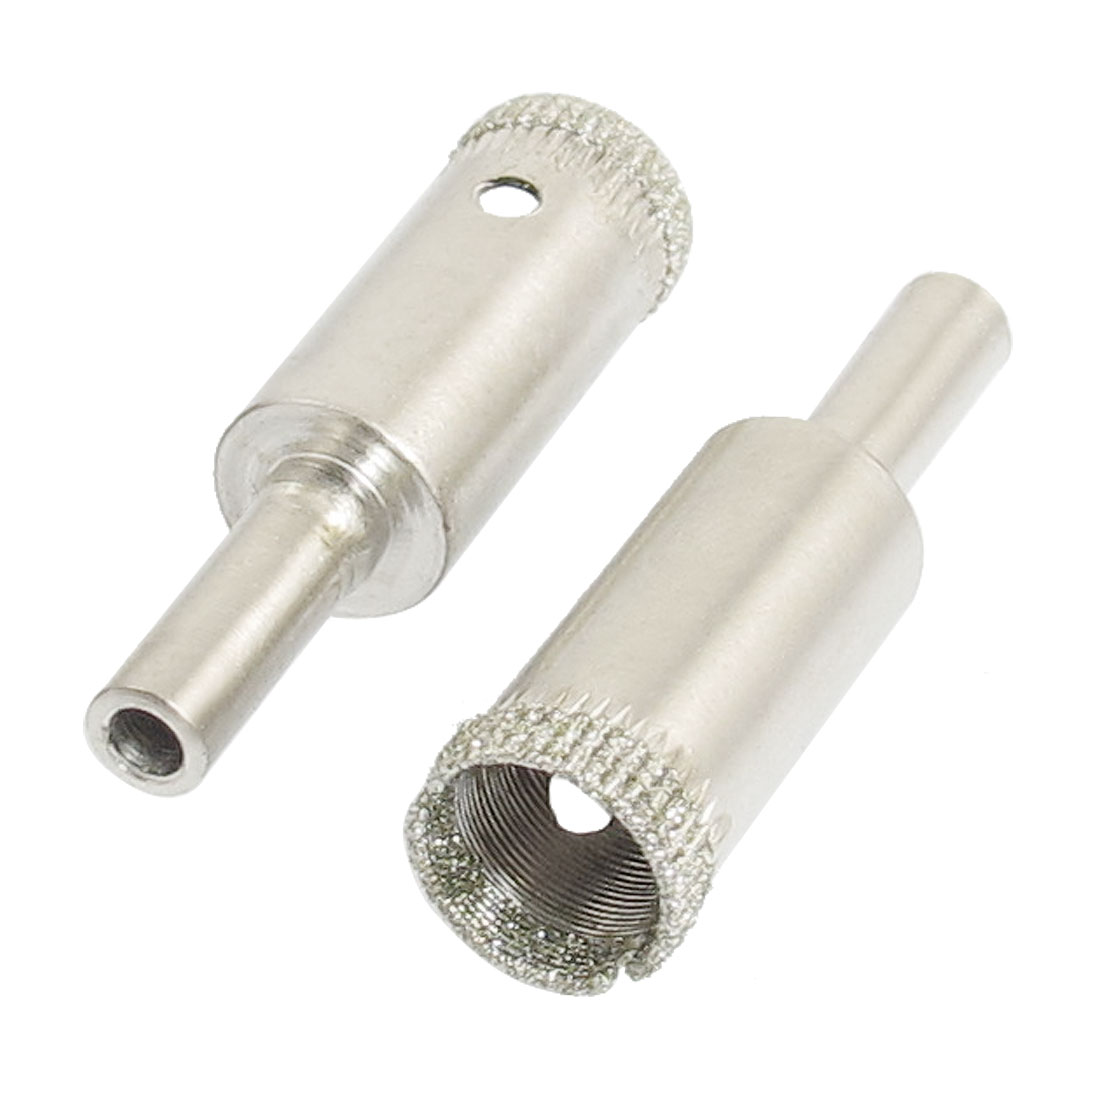 "2 Pcs Diamond Drill Bits 14mm 5/9"" Bottle Glass Tile Granite Hole Saw"